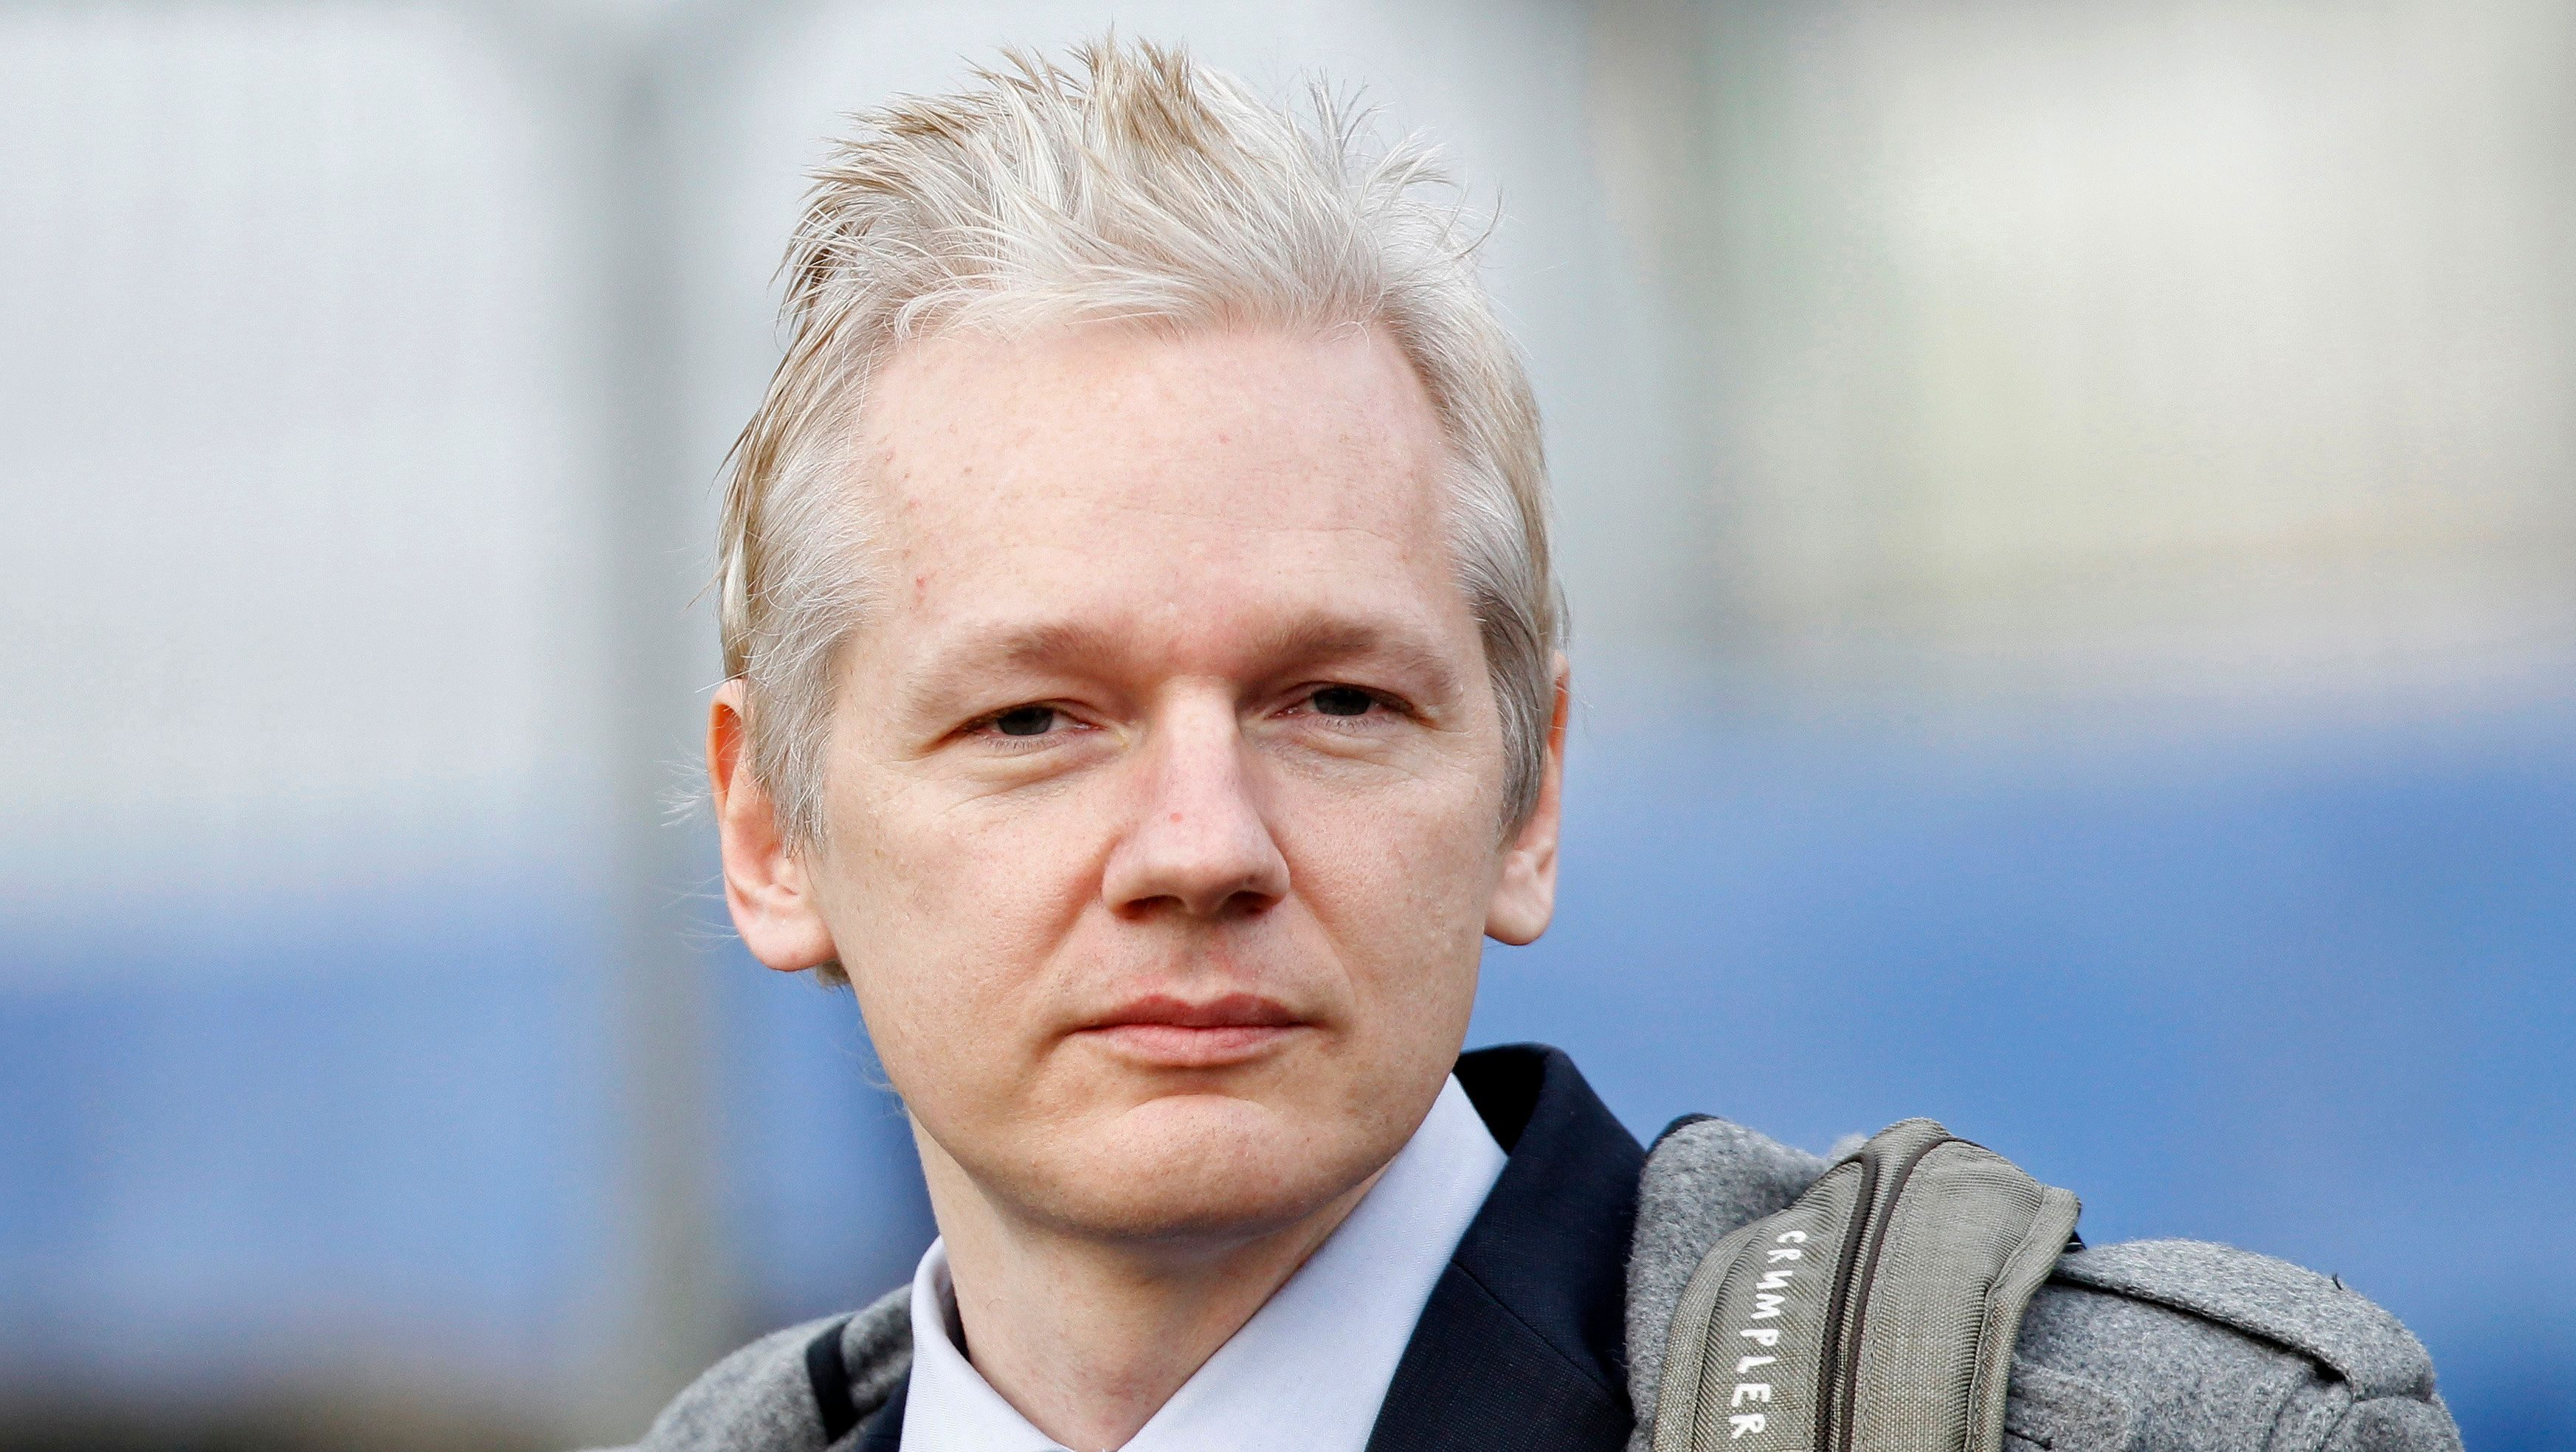 The Kenyan roots of Julian Assange's WikiLeaks